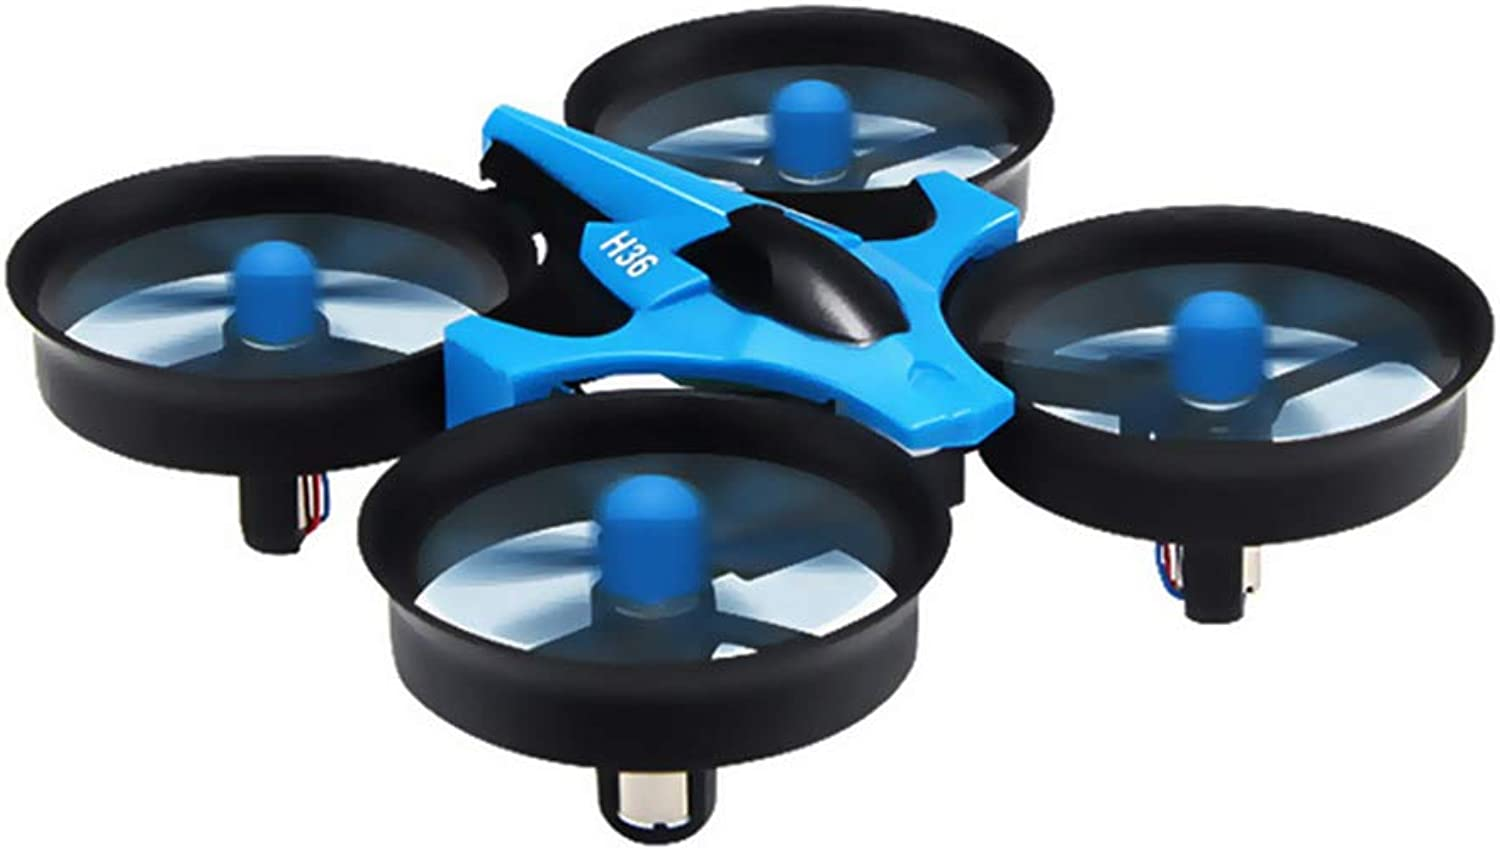 LSQR Micro Mini bluee Drone RC Drone Quadcopters Headless Mode One Key Return RC Helicopter Kids Best Toys For Boys